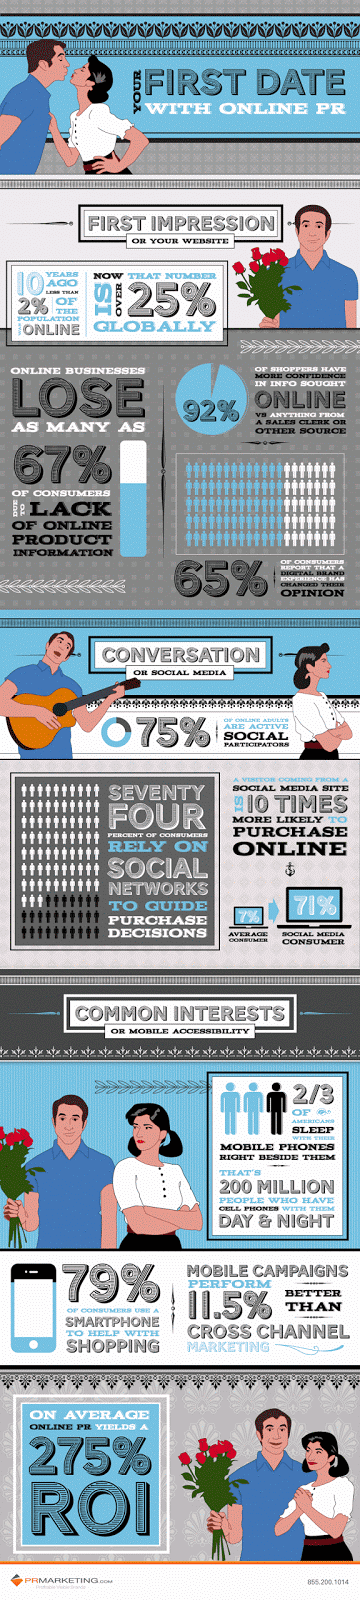 infographic on digital Public Relations as seduction